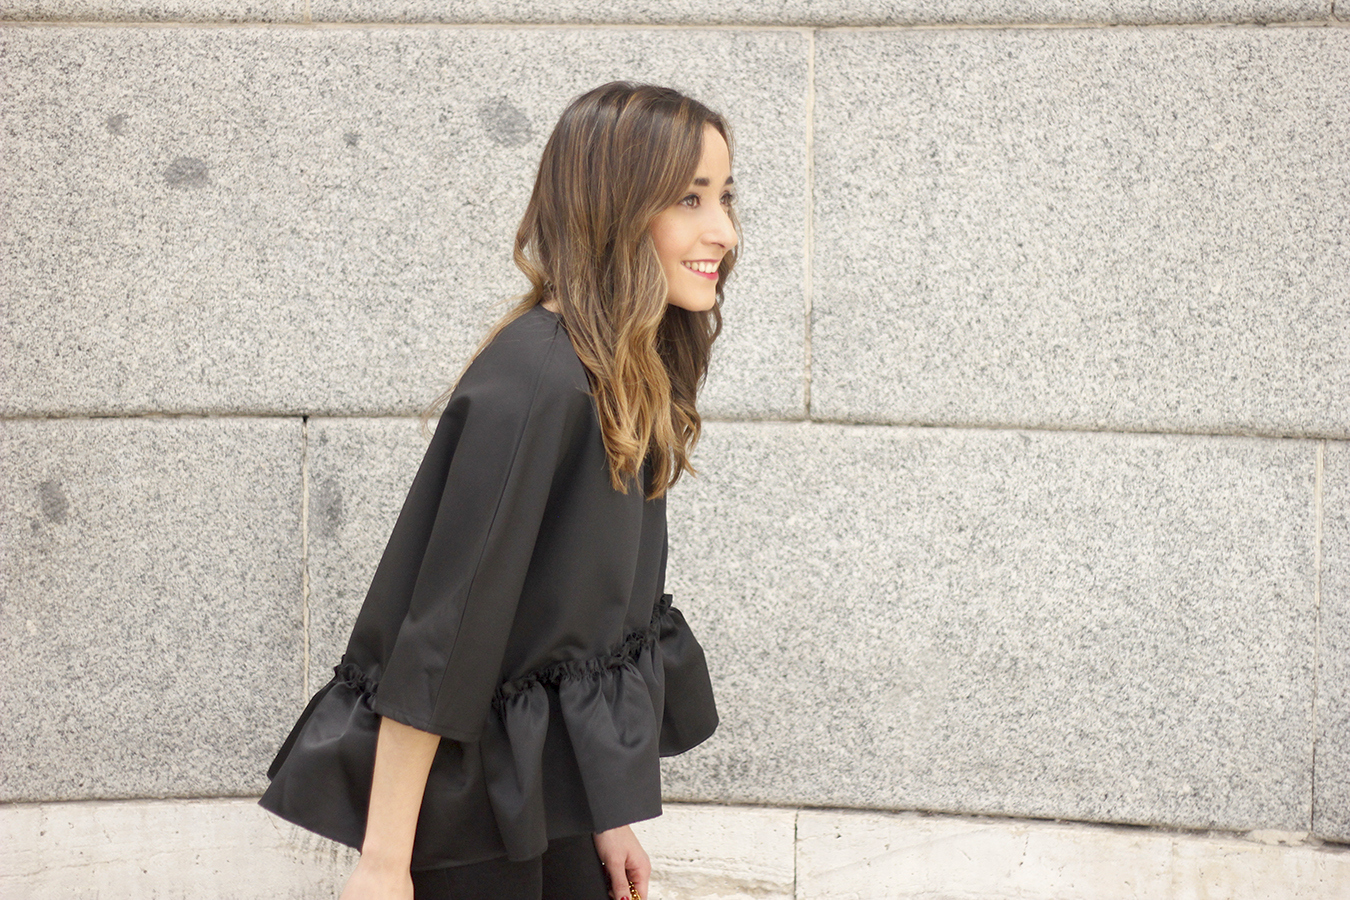 black top with a ruffle Carolina Herrera Sandals YSL bag accessories outfit style17